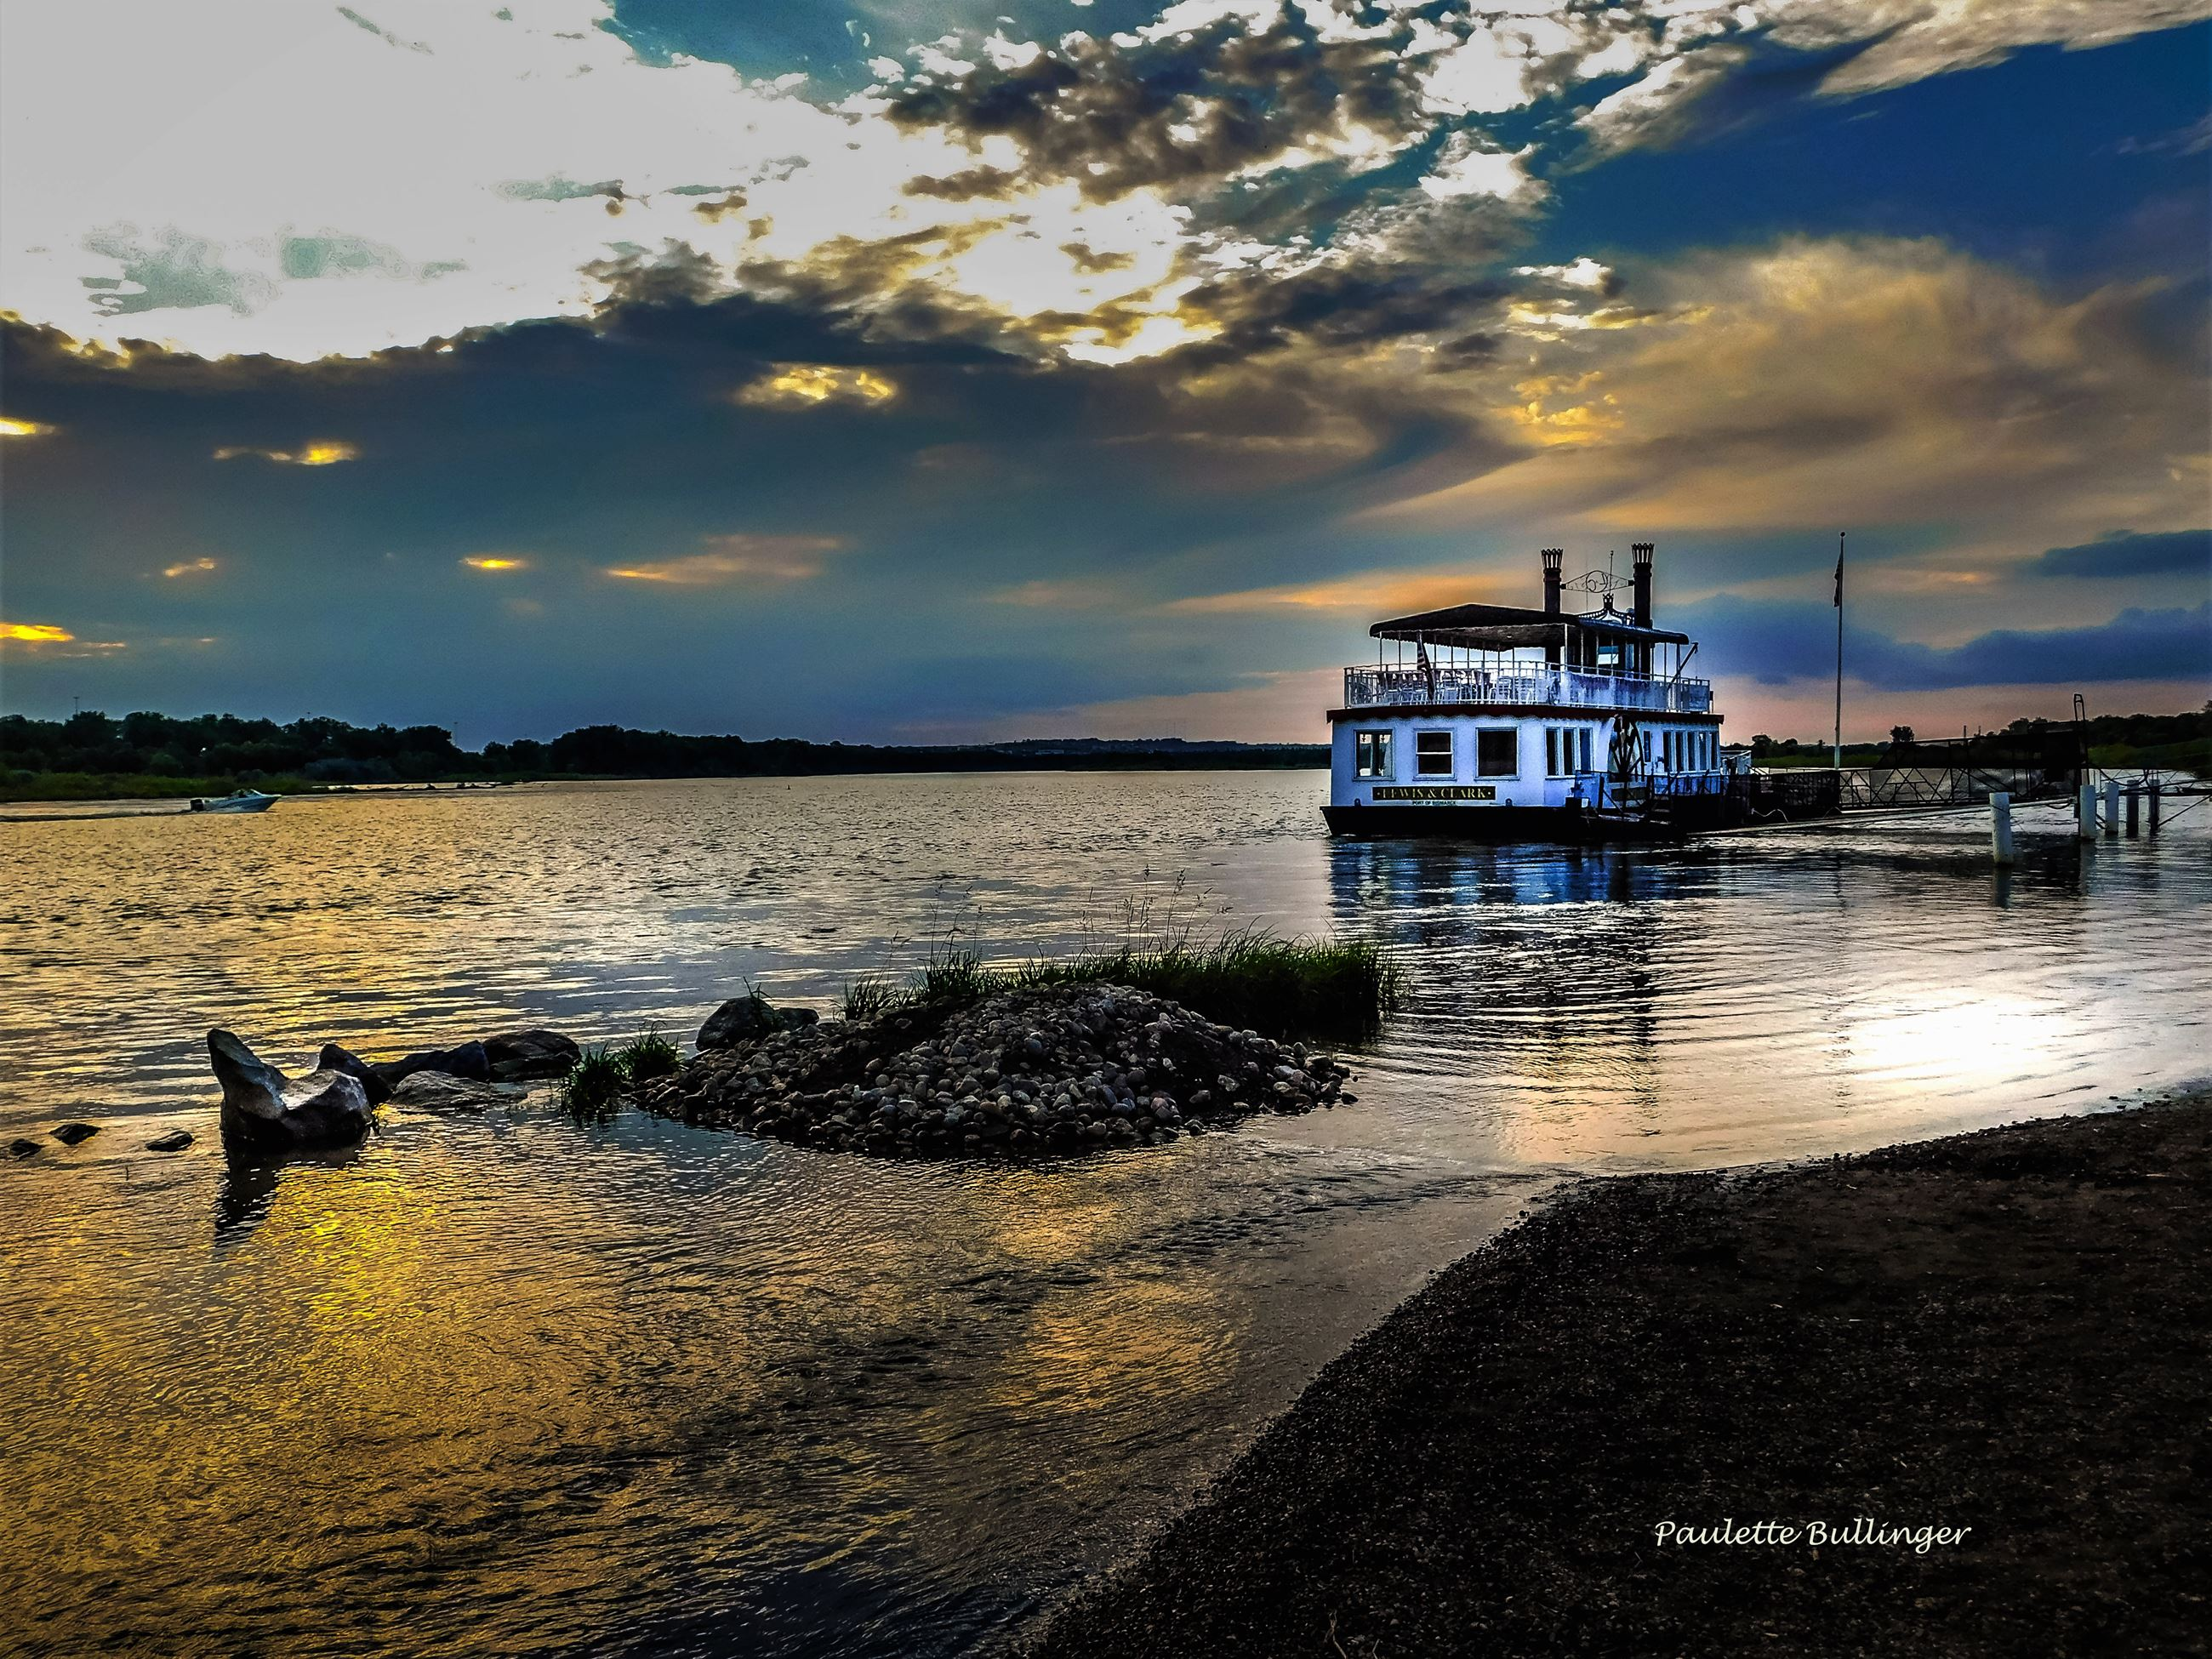 Photoshop Riverboat - Photo Credit - Paulette Bullinger